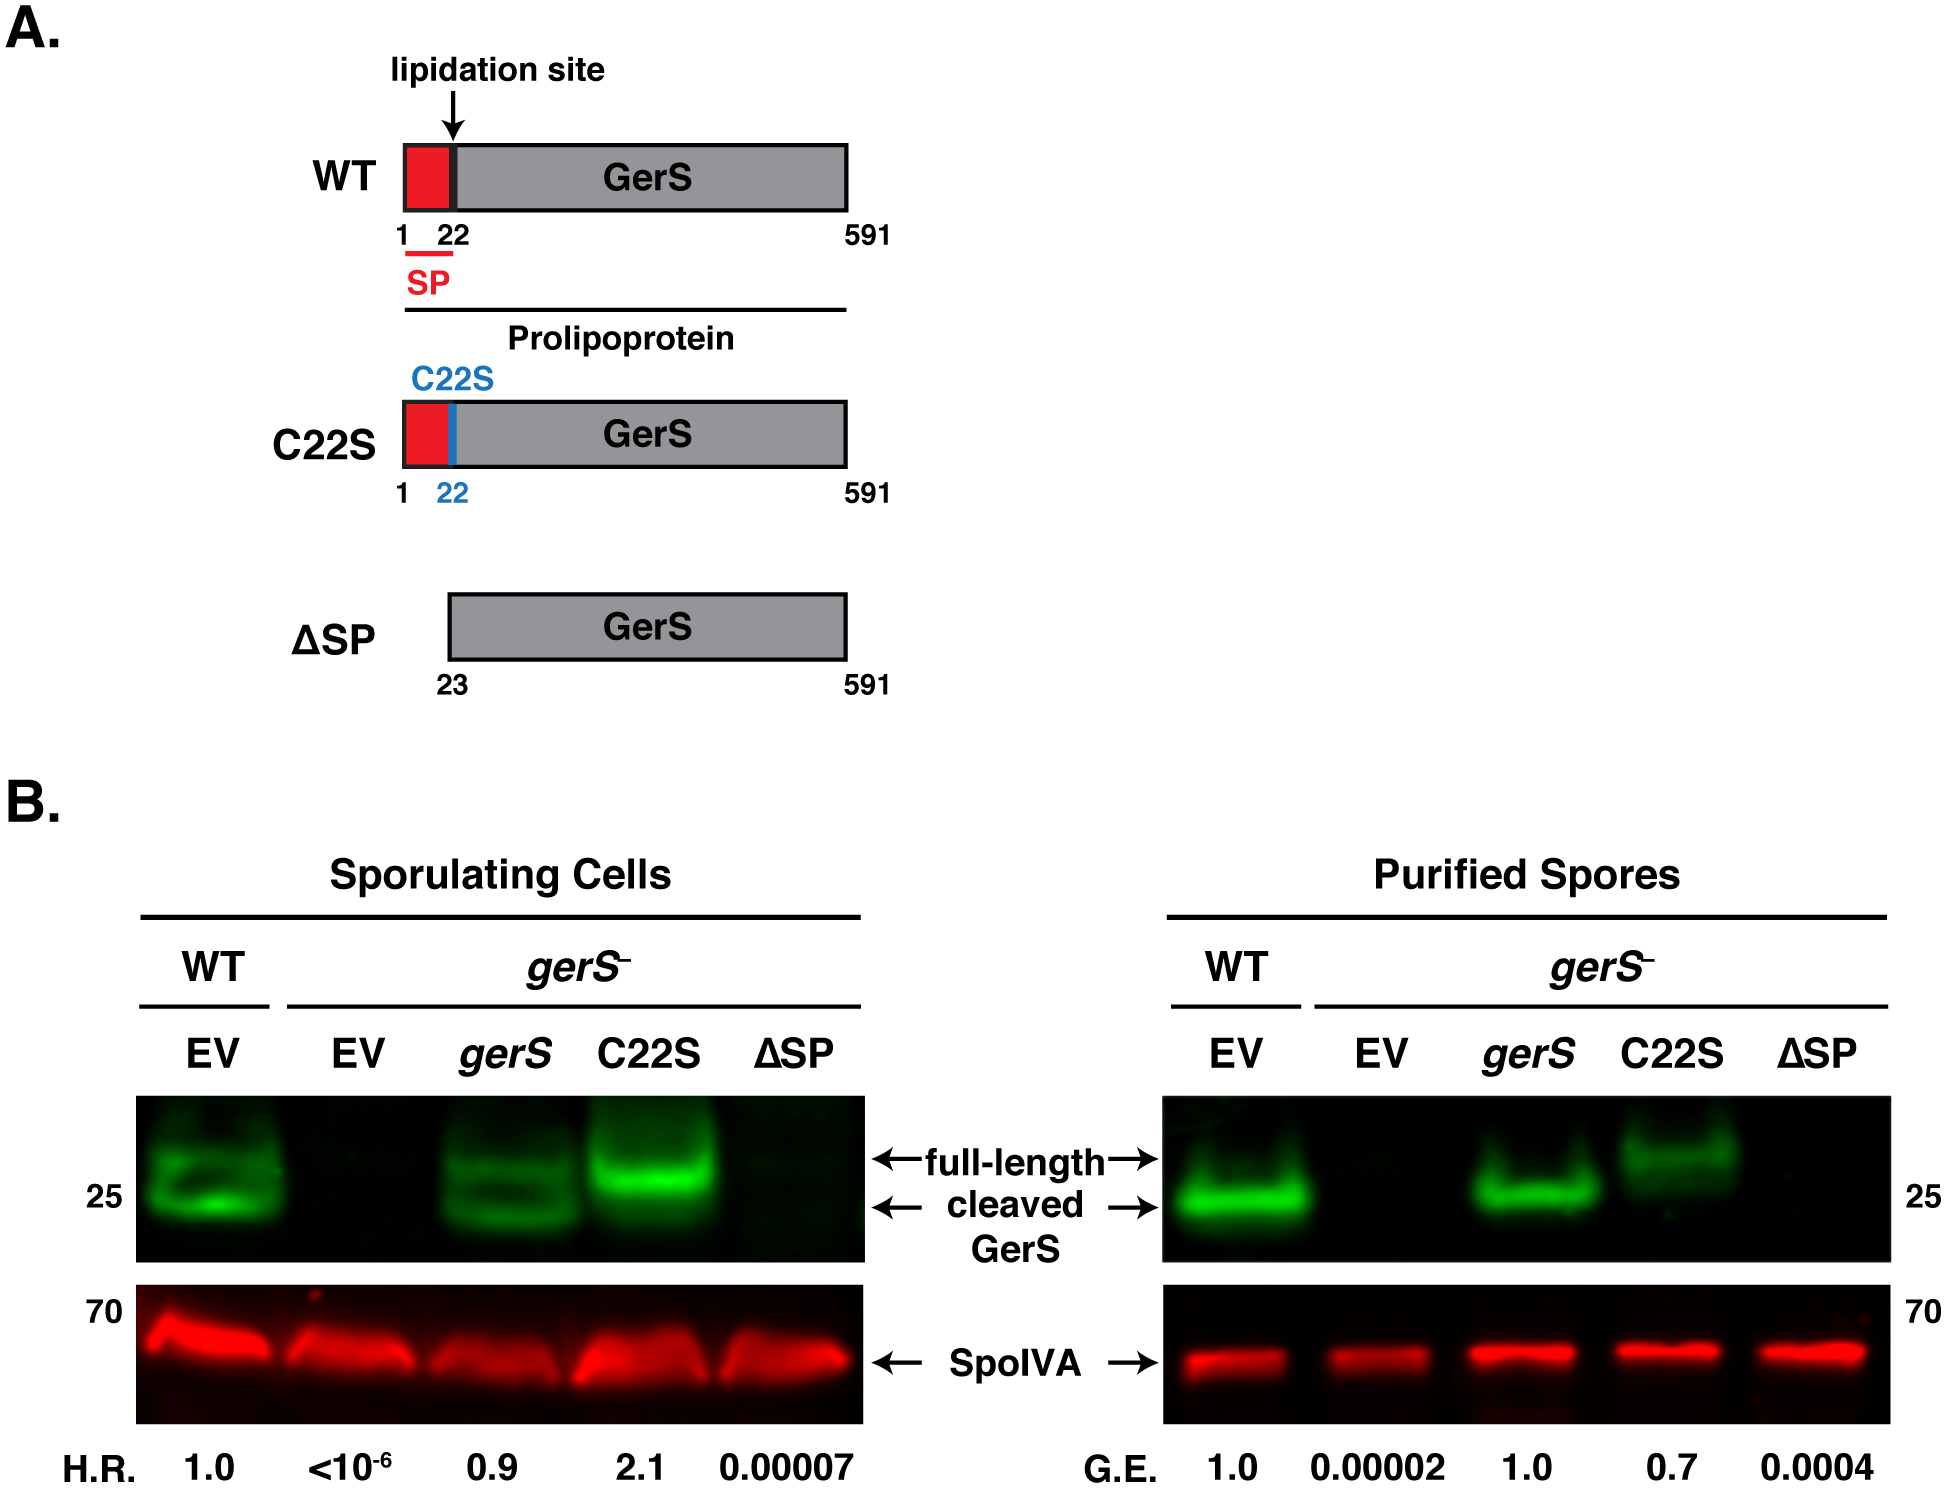 The signal peptide of GerS, but not its lipidation site, is required for germination.